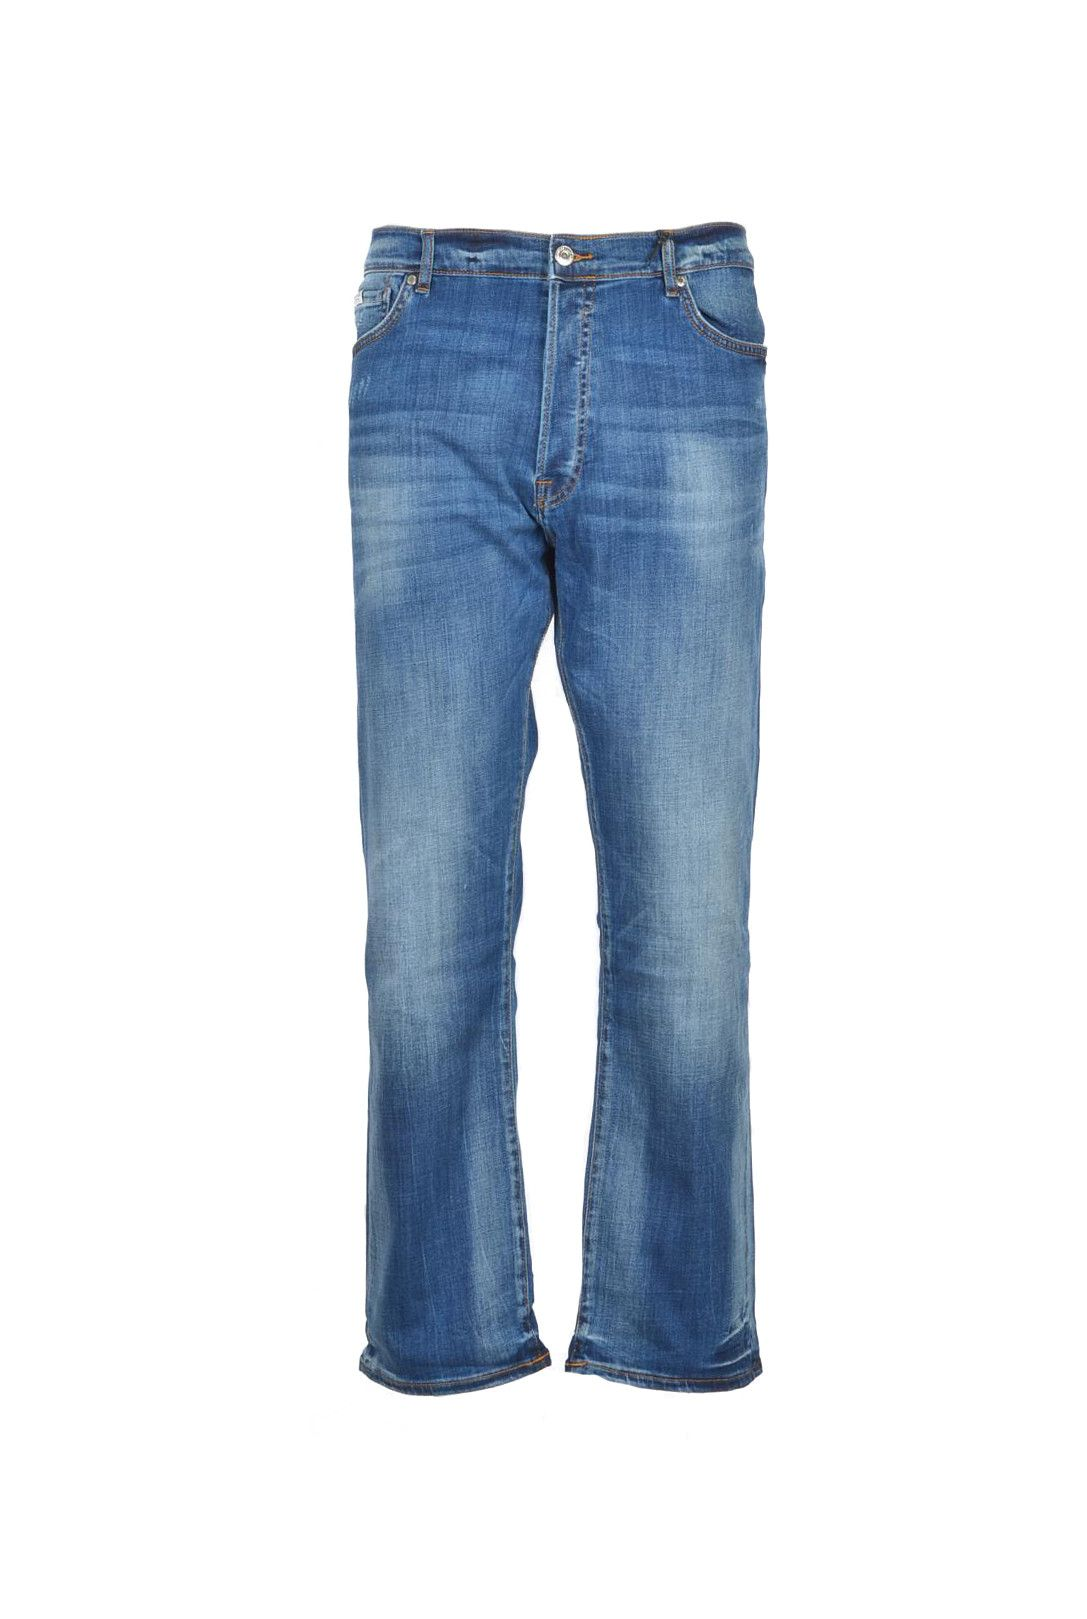 Guess Men's Jeans In Blue